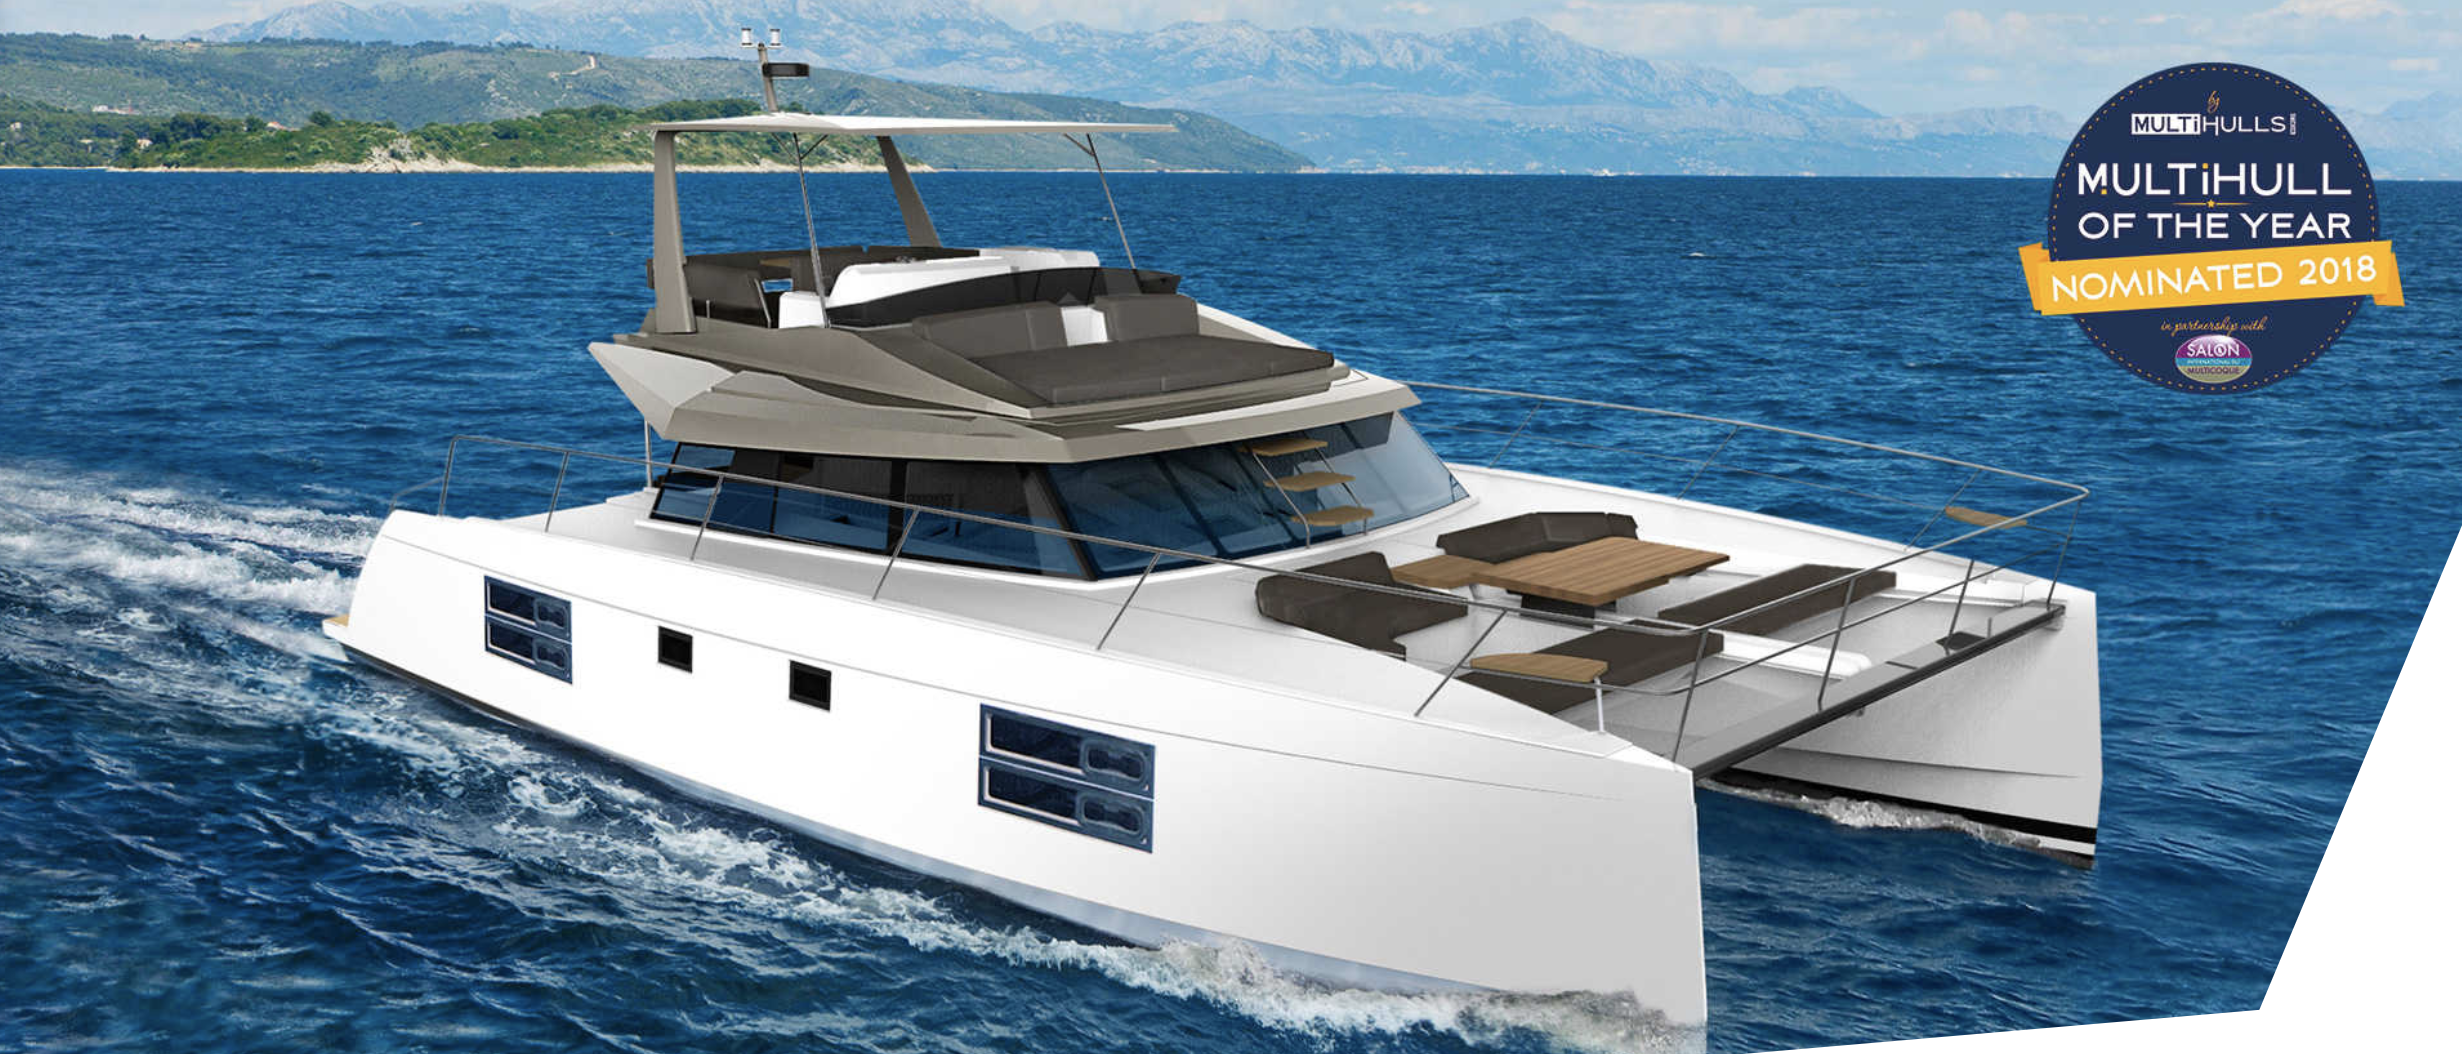 Multihull of the year Nominee 2018